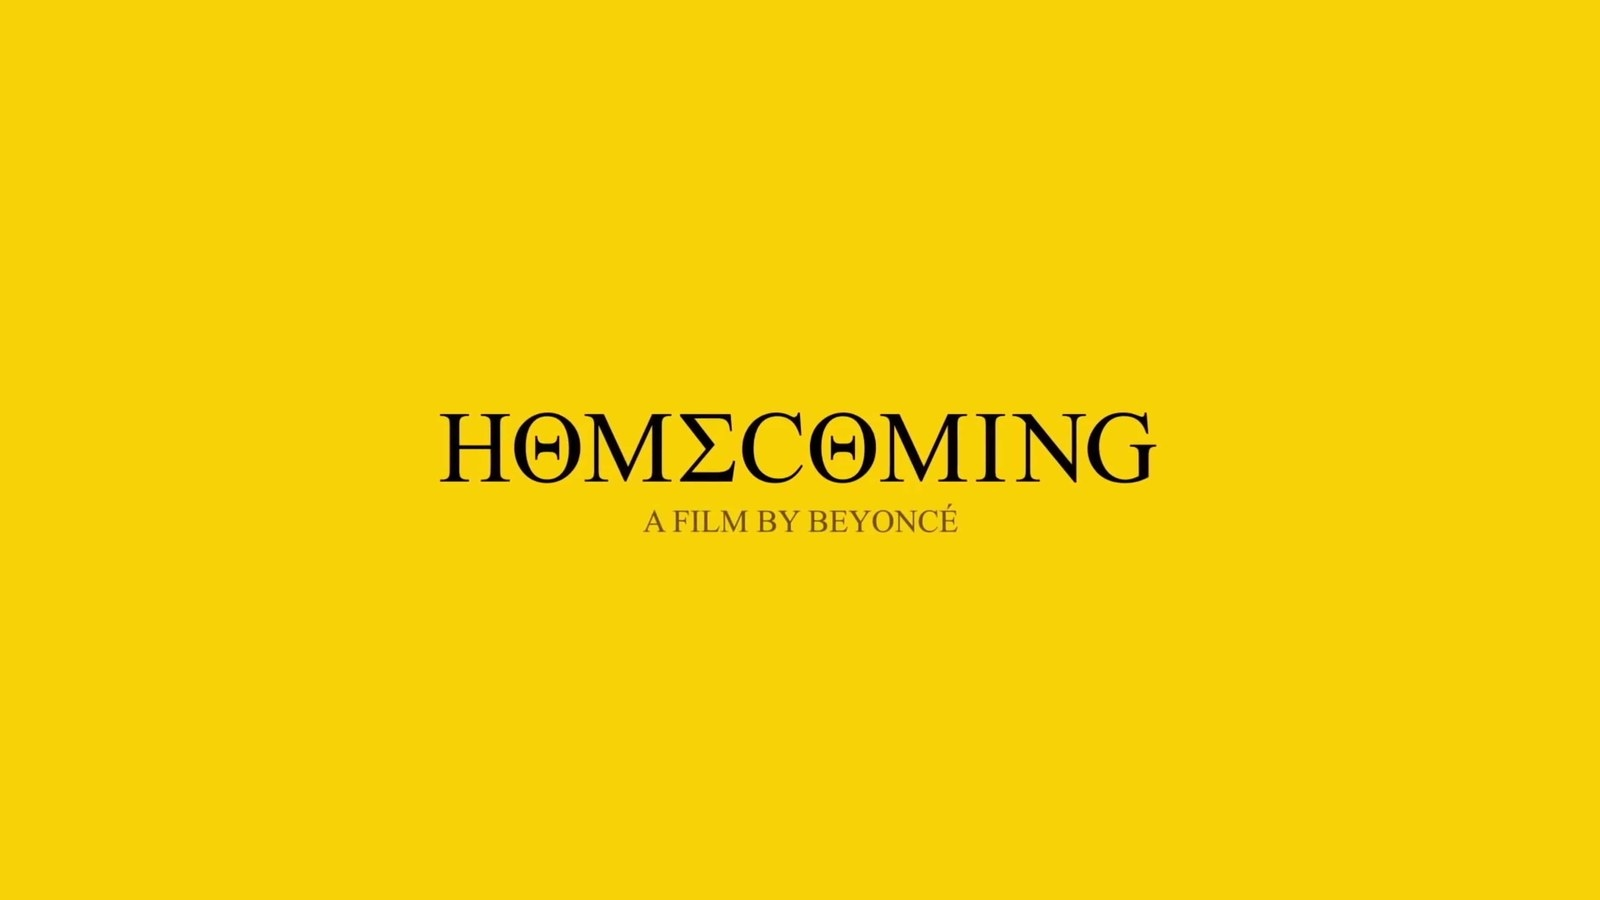 """12 Things We Learned From Beyoncé's """"Homecoming"""" That Have This Fan Shaking"""